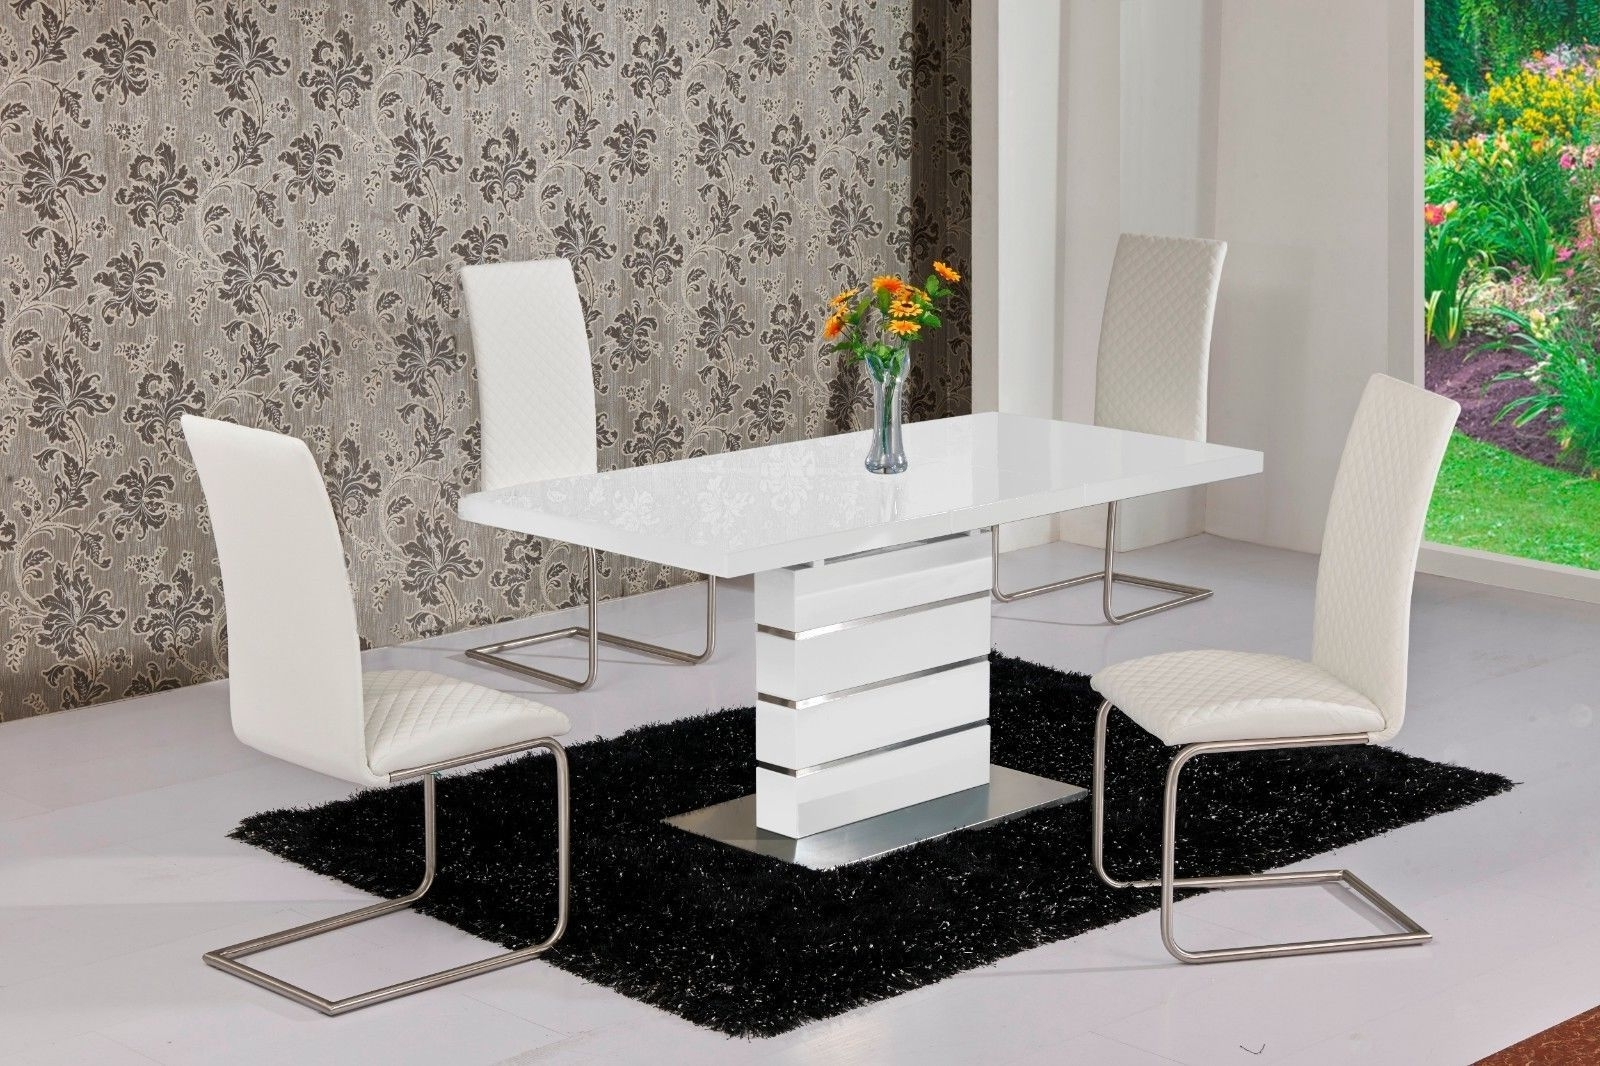 Mace High Gloss Extending 120 160 Dining Table & Chair Set – White For Trendy White Gloss Extendable Dining Tables (View 2 of 25)